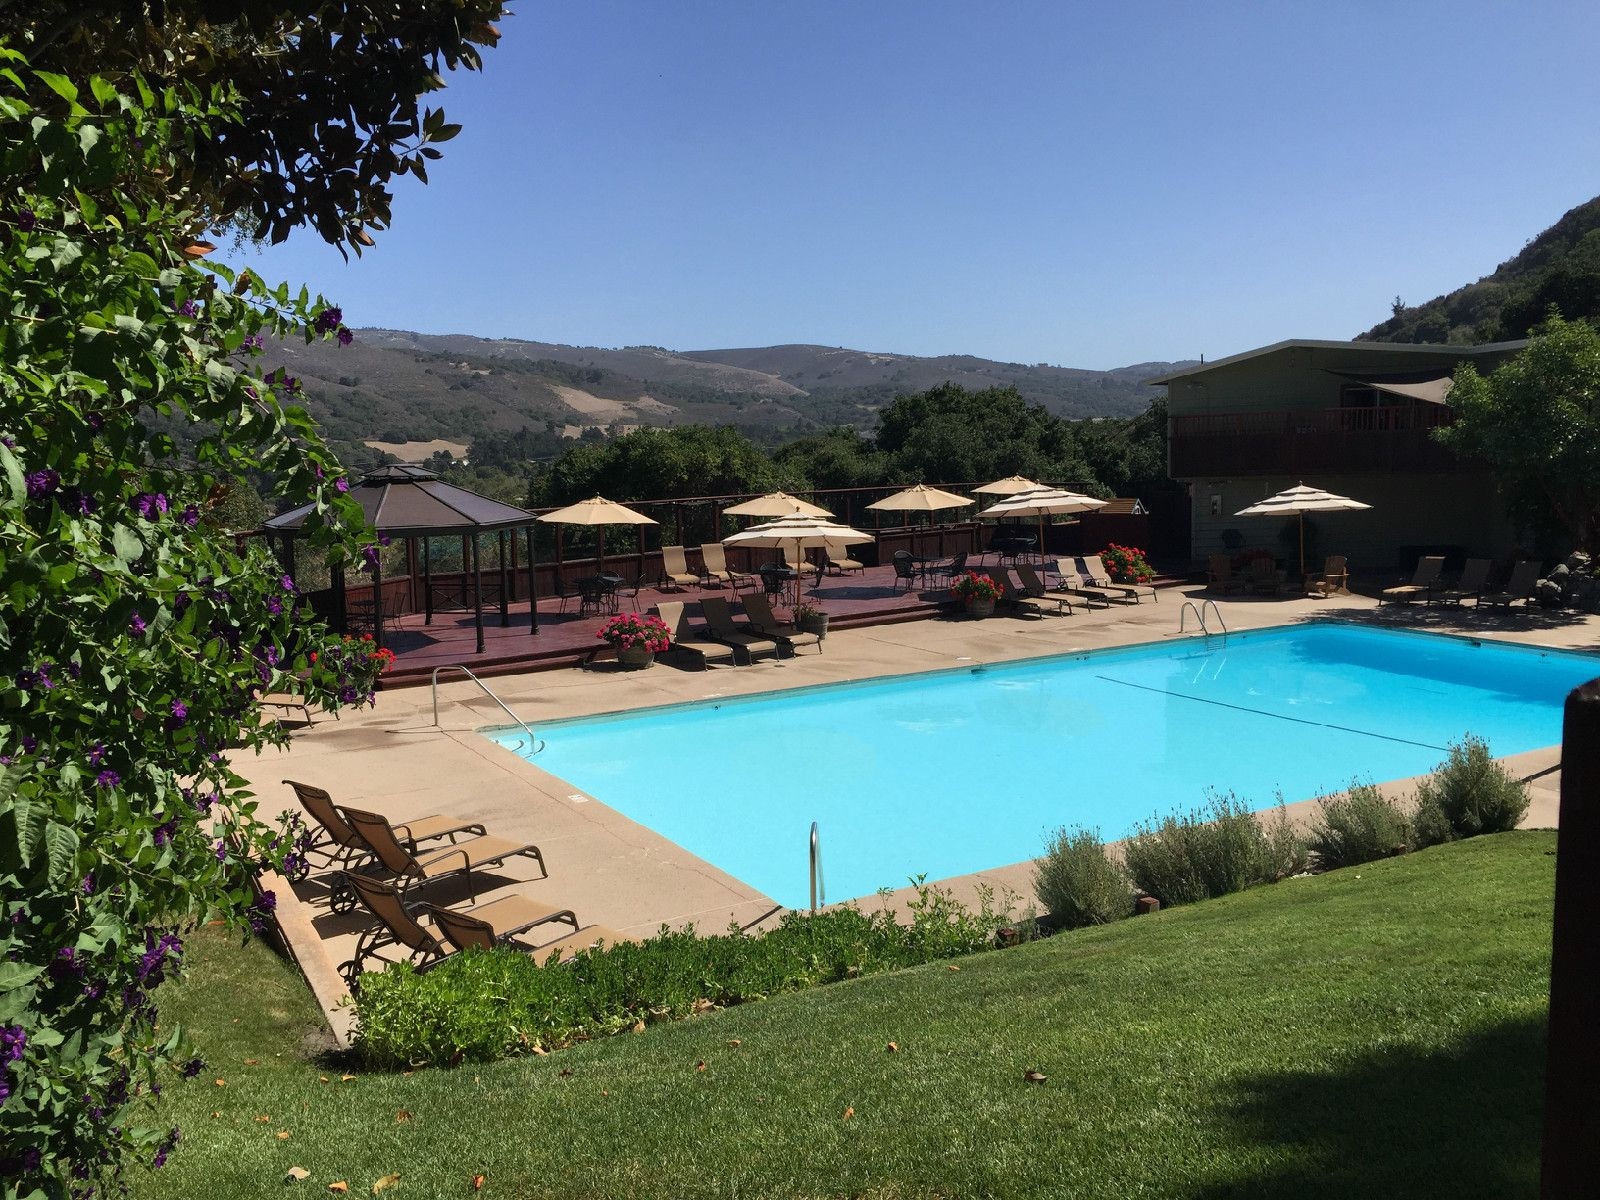 Saddle Mountain Ranch Carmel Ca Rv Parks And Camping